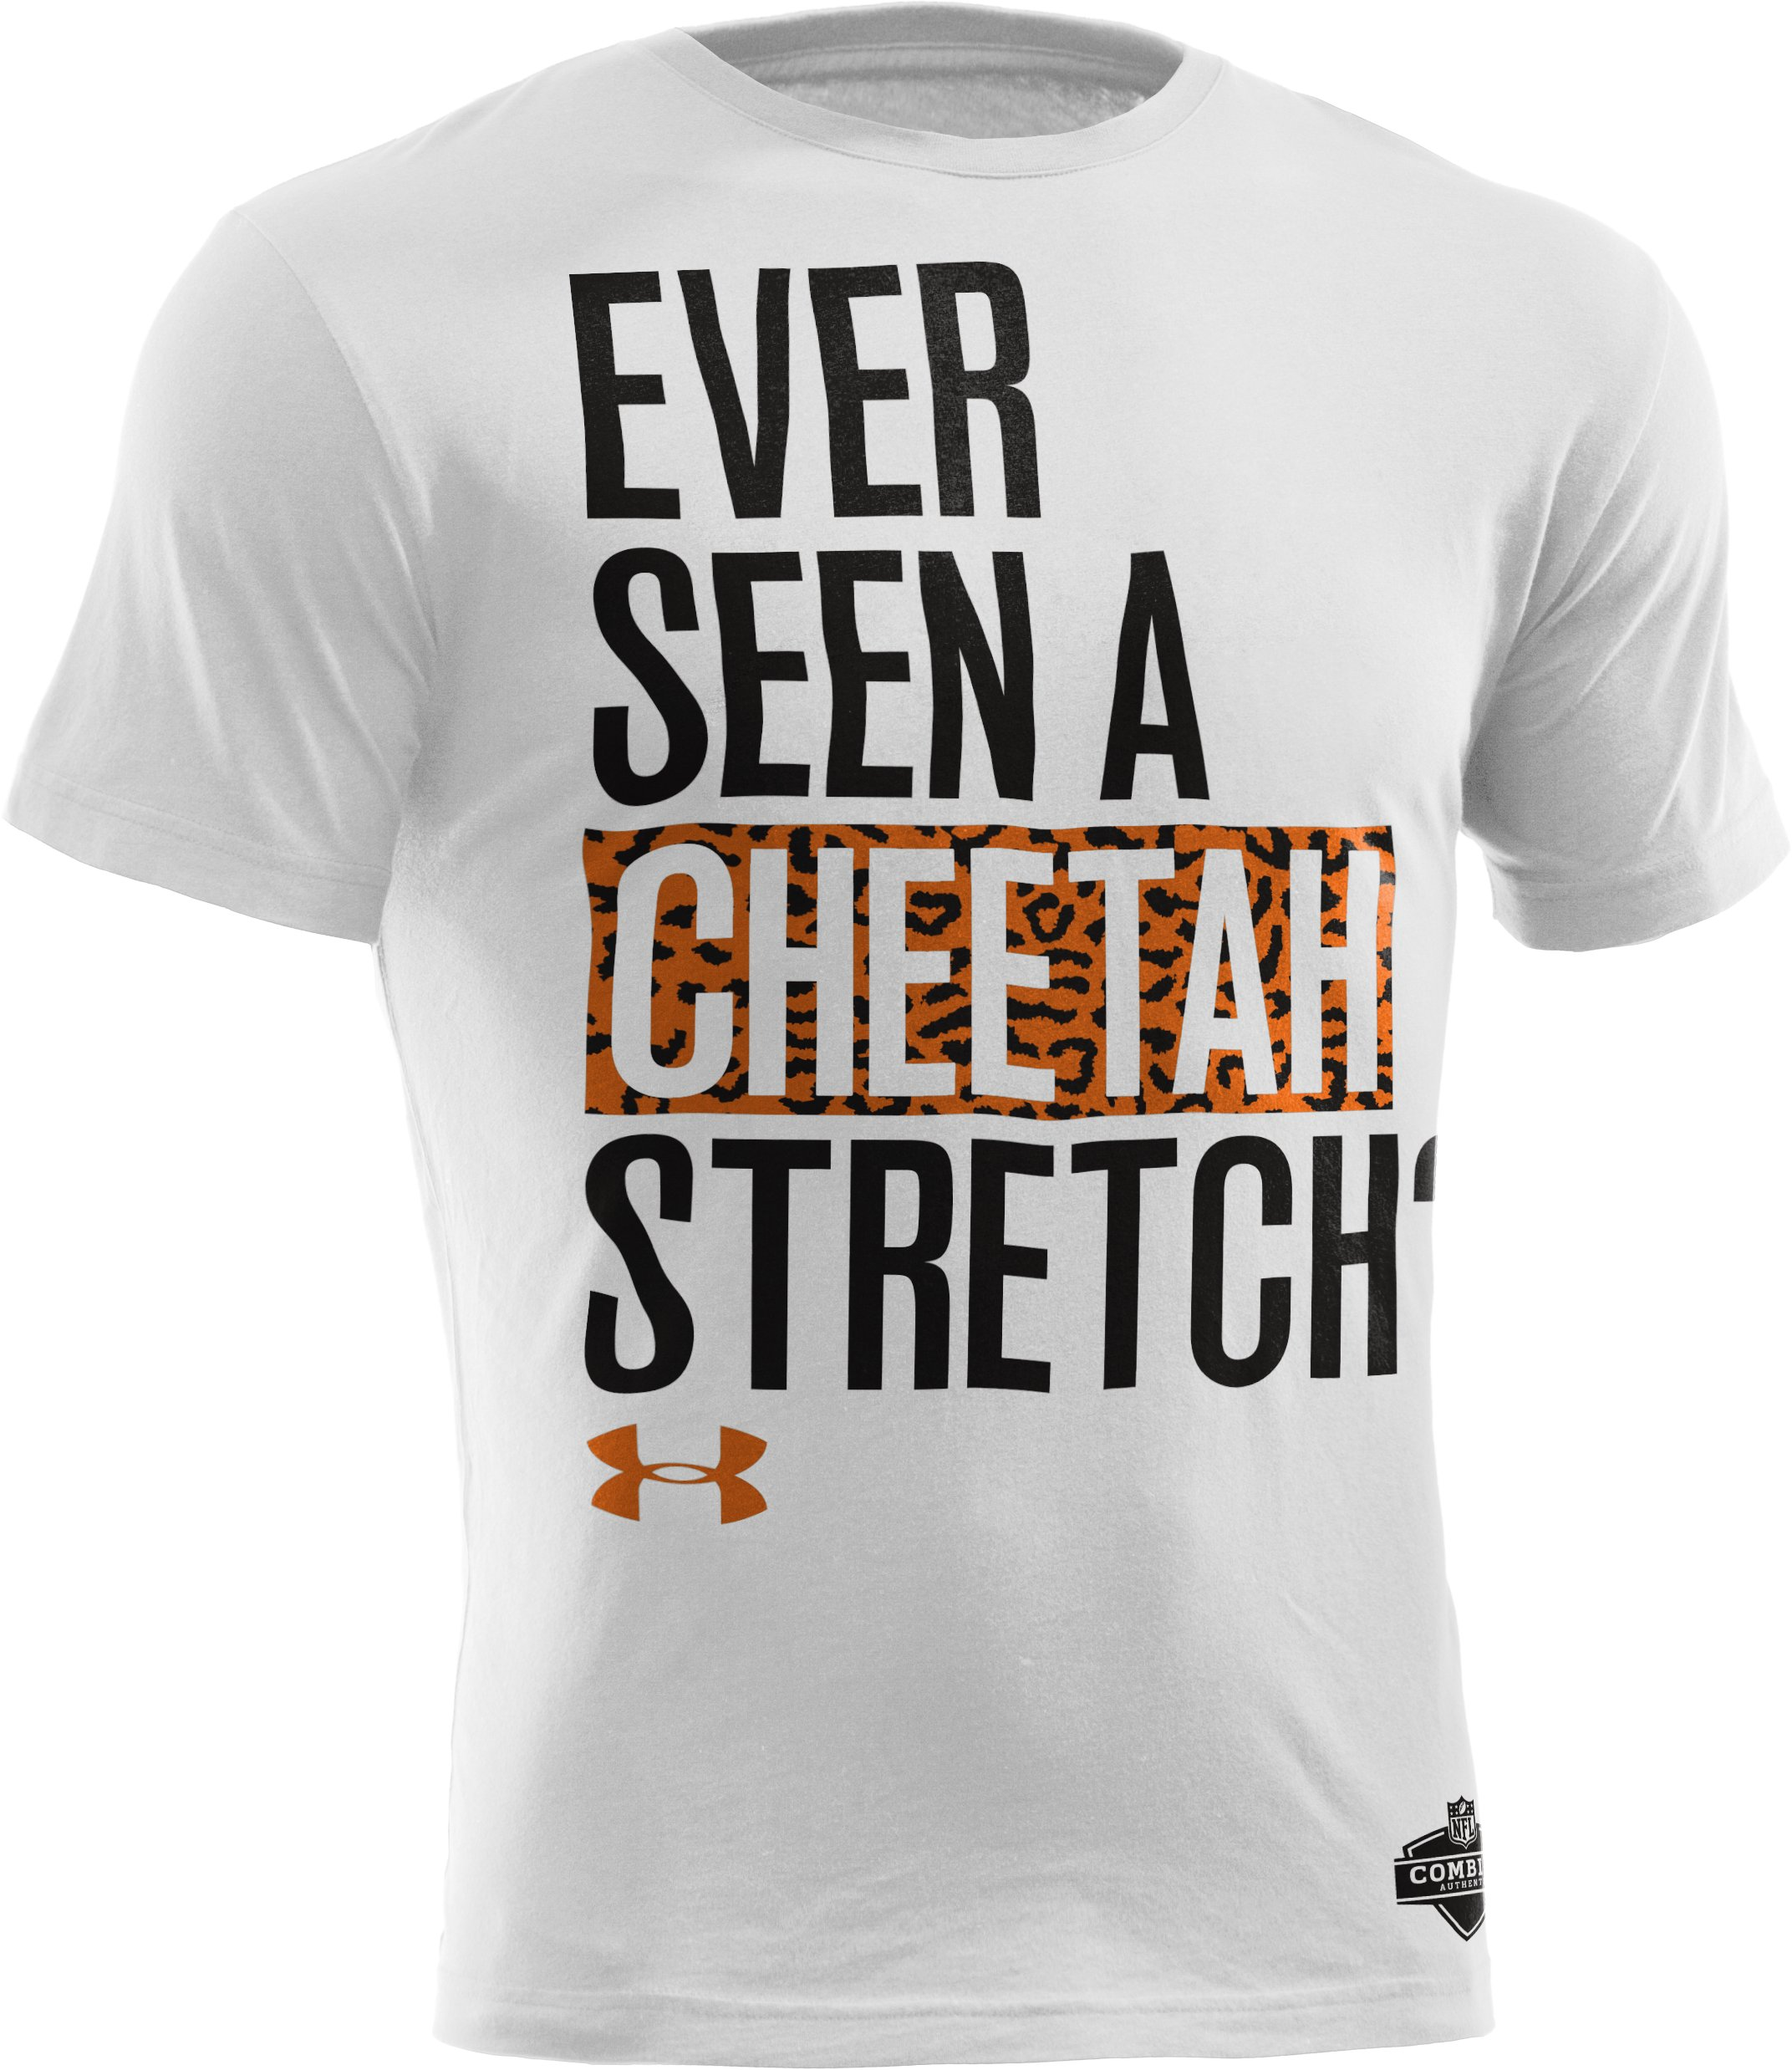 Men's NFL Combine Authentic Sandcastle Cheetah T-Shirt, White